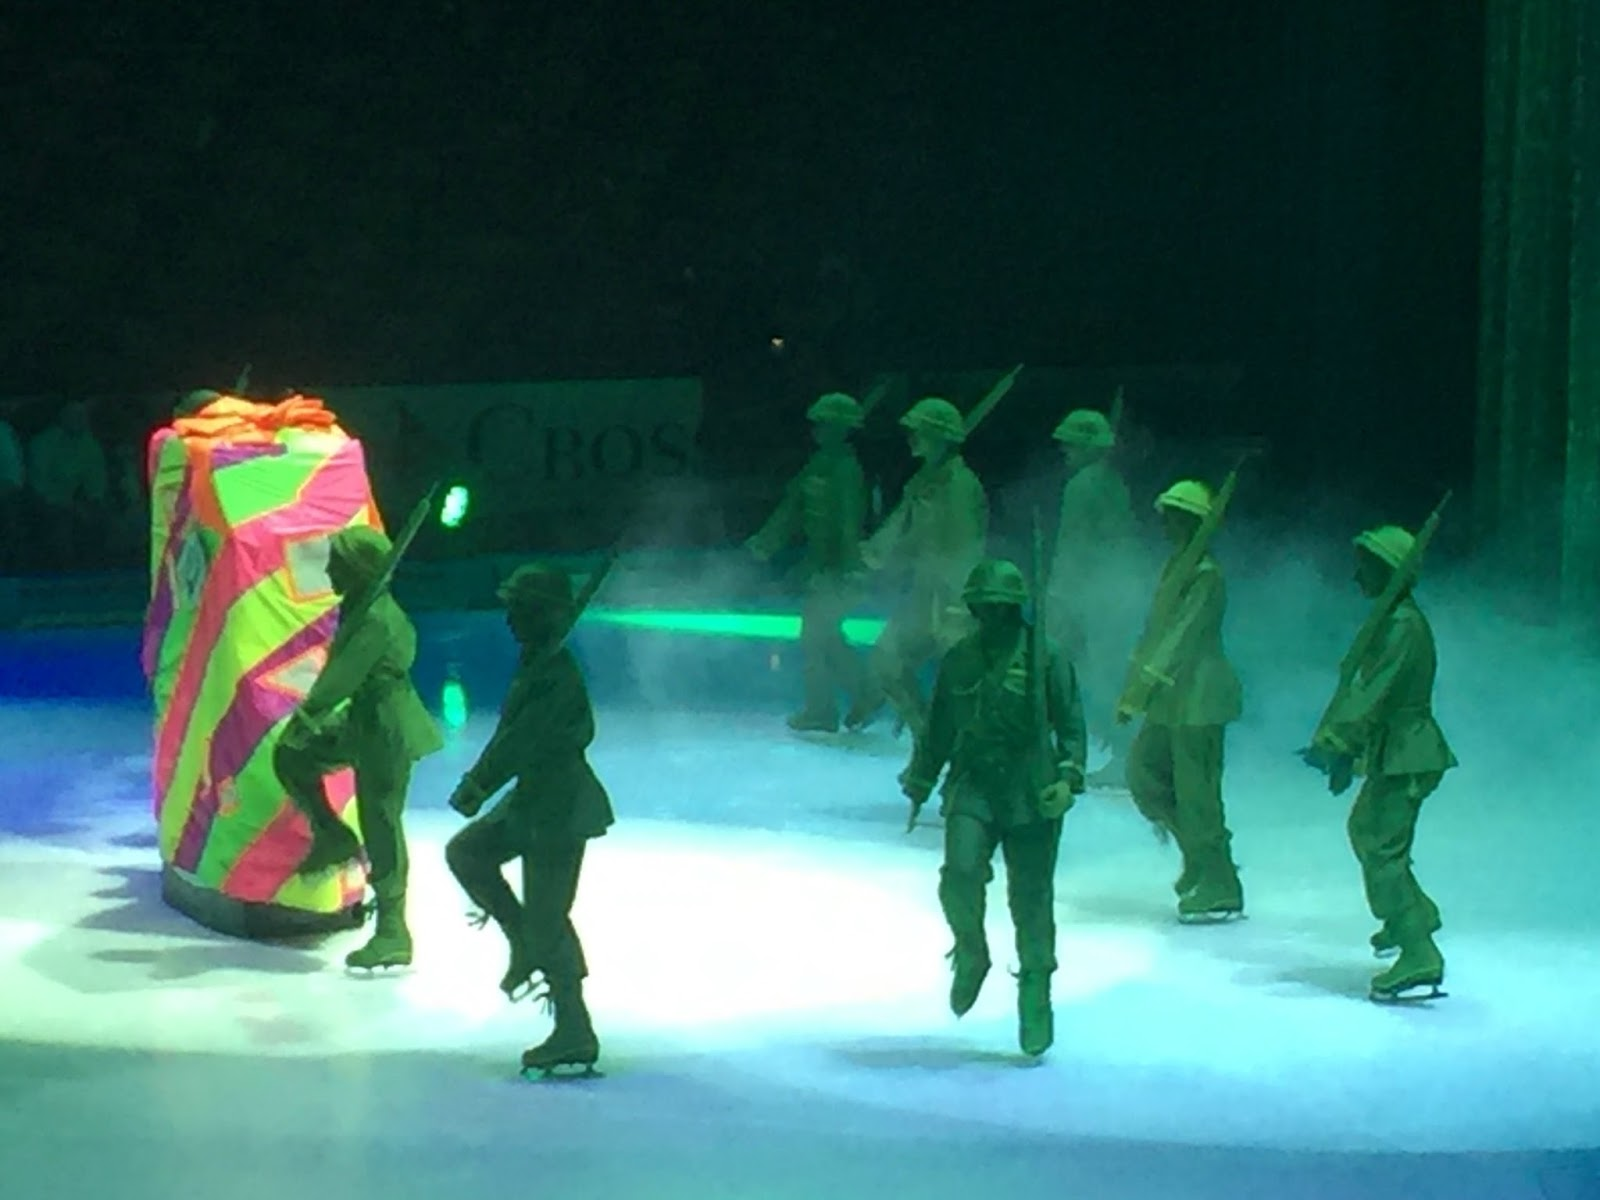 Disney On Ice 100 Years Of Magic Will Be At The TD Garden In Boston Through  February 21st, Making It A Perfect Surprise Outing During School Vacation  Week!